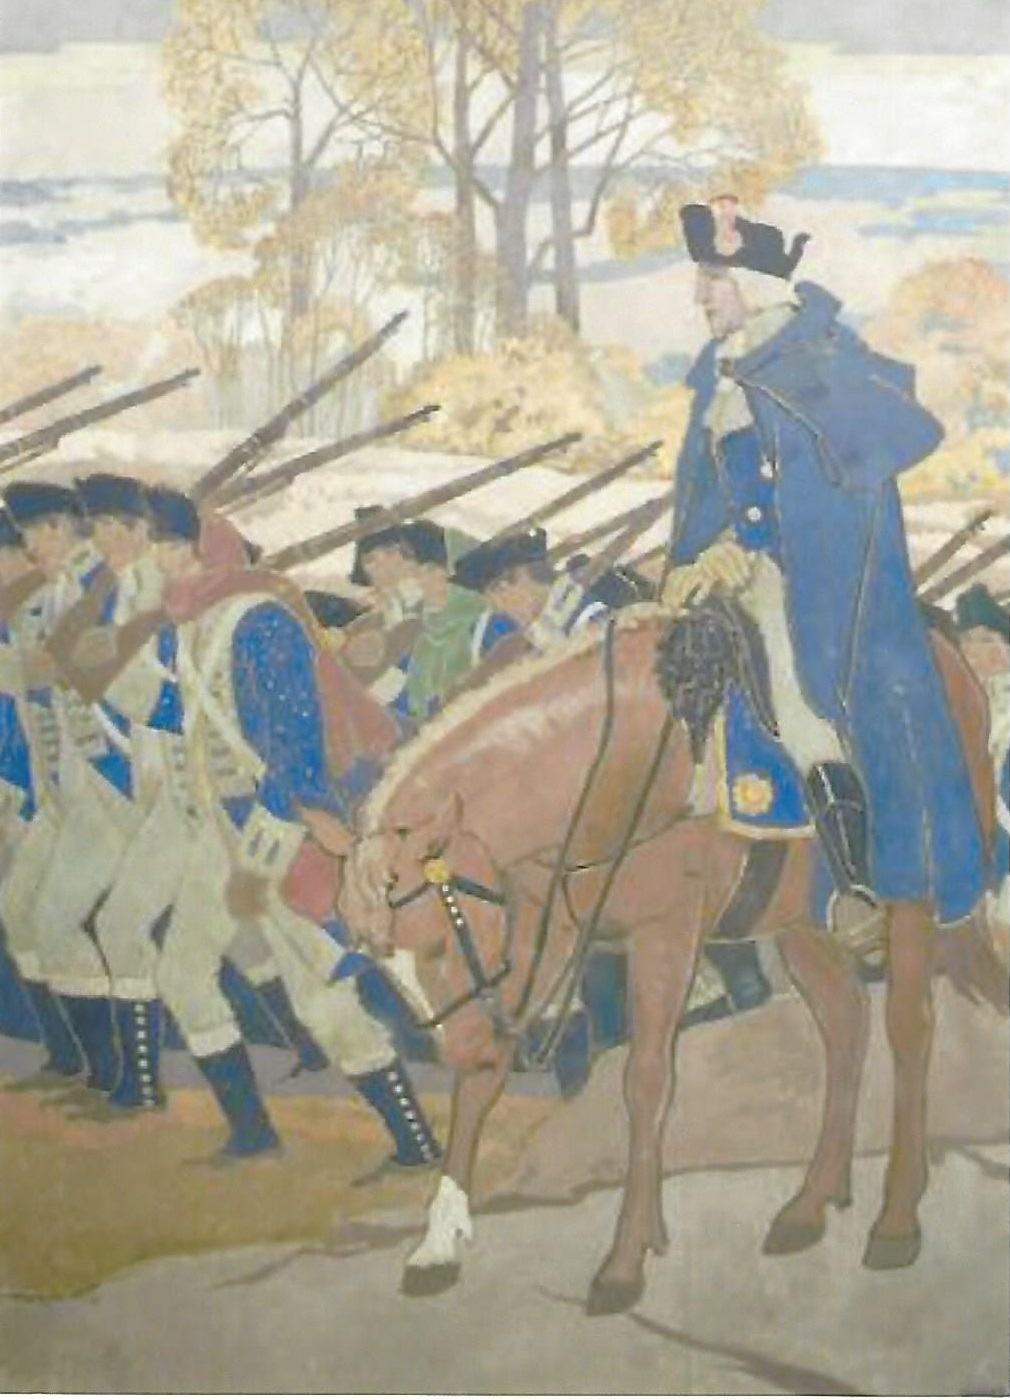 George Washington with his troops (Mural) - A second work marking that same day is a mural by artist Howard McCormick in the auditorium at the Anna C. Scott Elementary School. McCormick painted it as part of a WPA project in 1936.George Washington with his troops, mural painted by Howard McCormick 1936 (Anna C. Scott Elementary School)